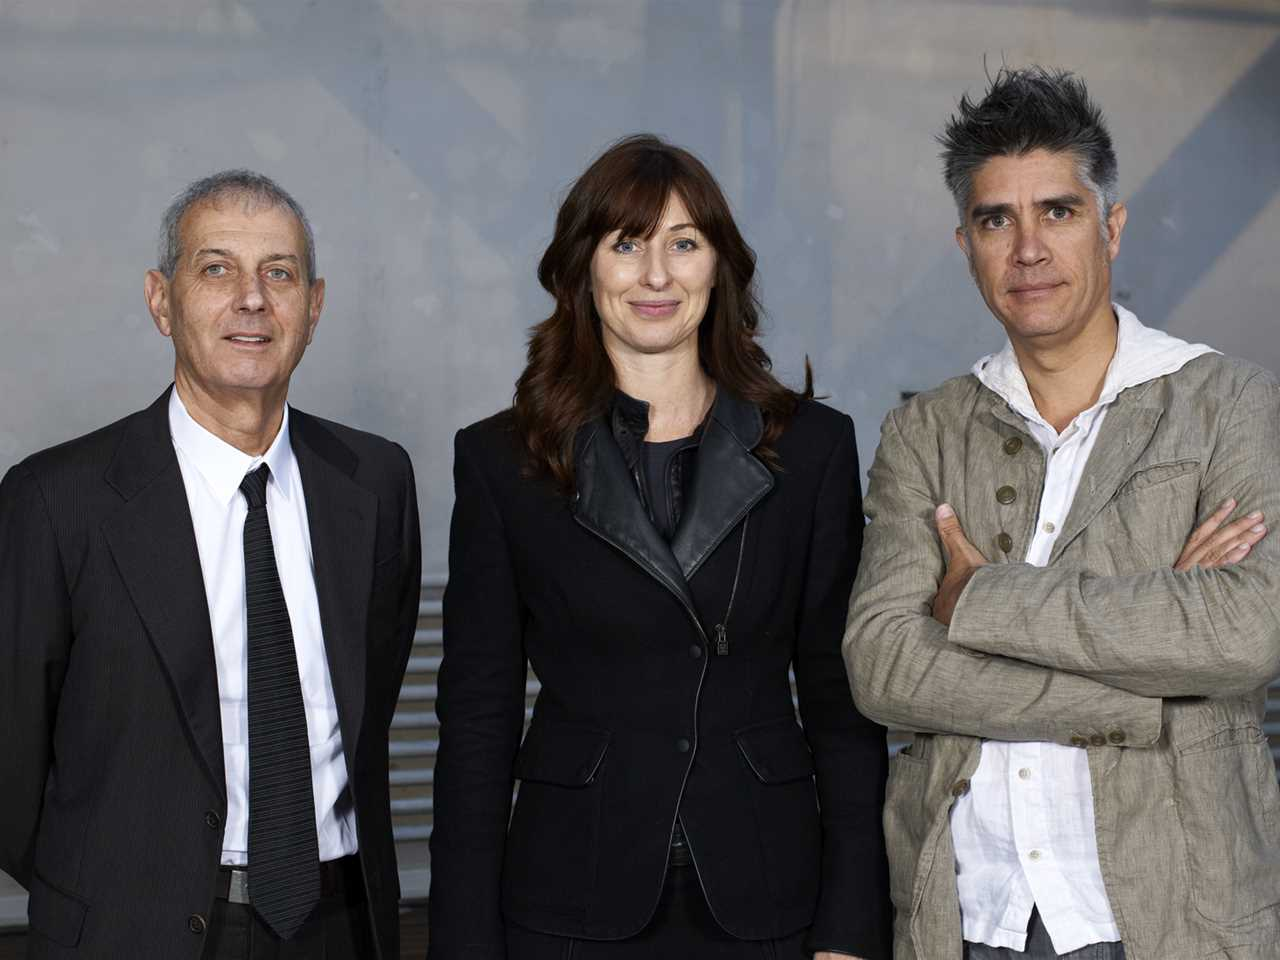 The new board members Marc Angéli, Maria Atkinson and Alejandro Aravena.